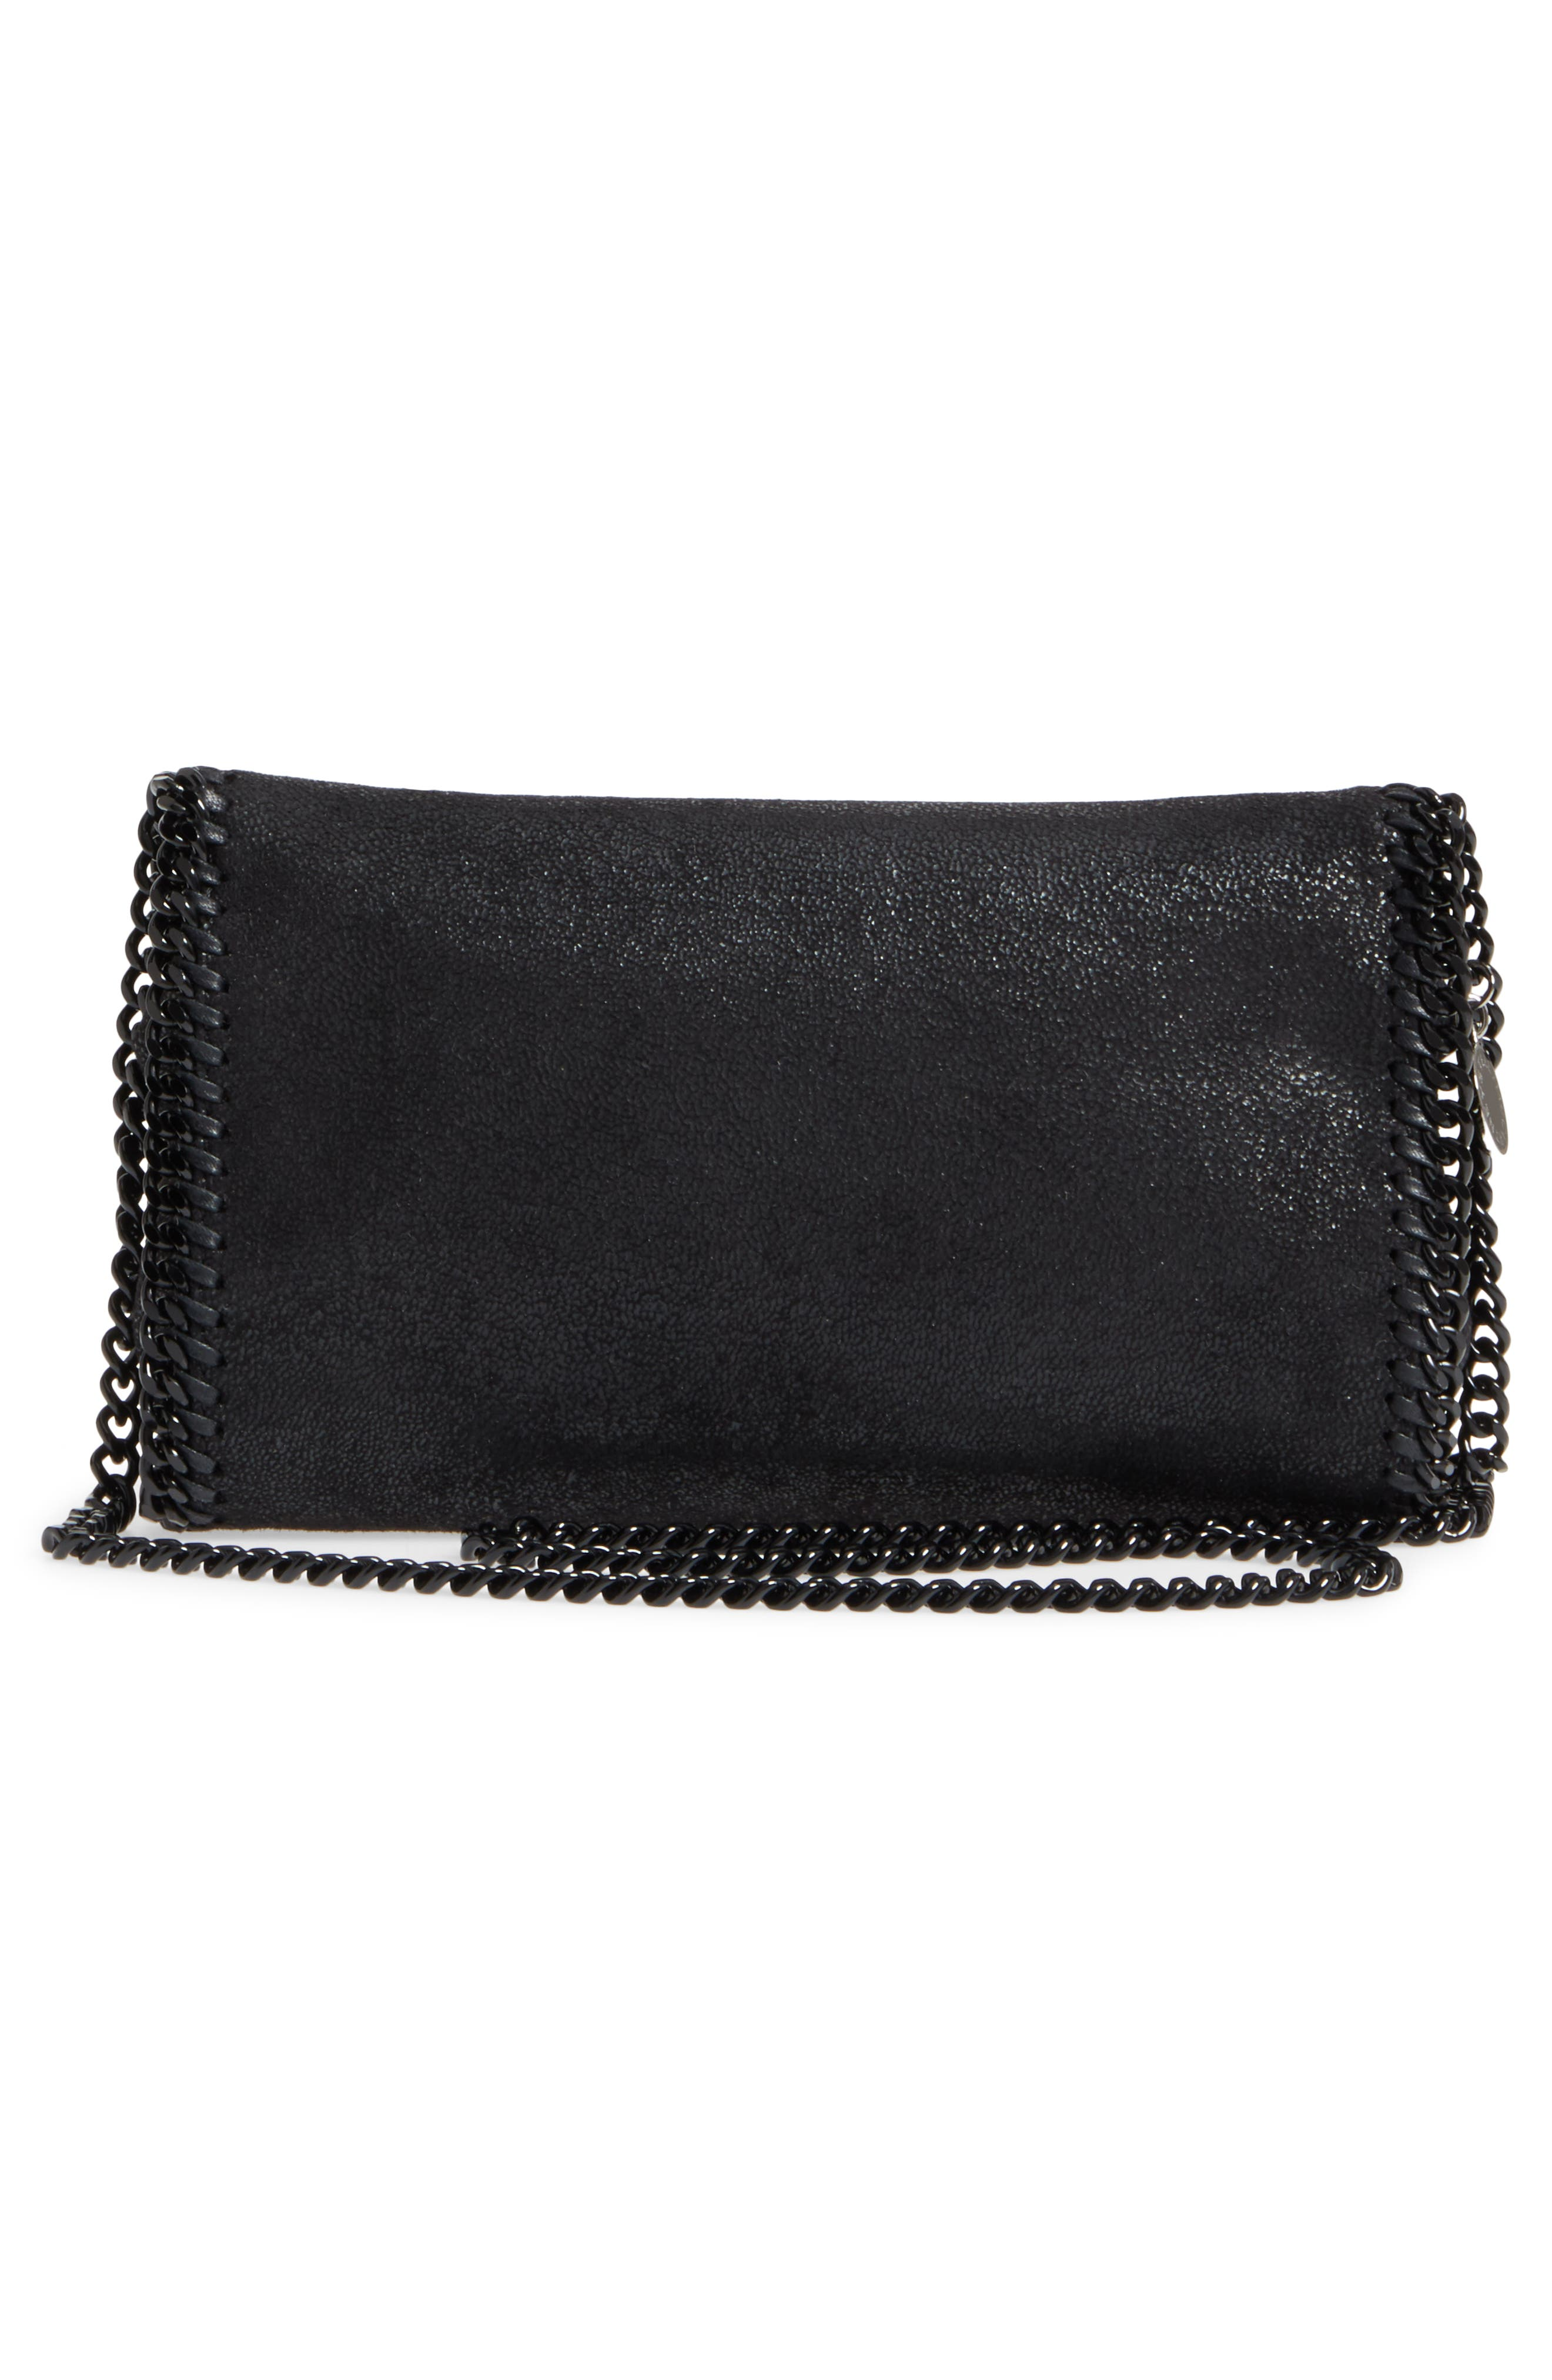 STELLA MCCARTNEY, Falabella Shaggy Deer Faux Leather Clutch, Alternate thumbnail 3, color, BLACK OUT